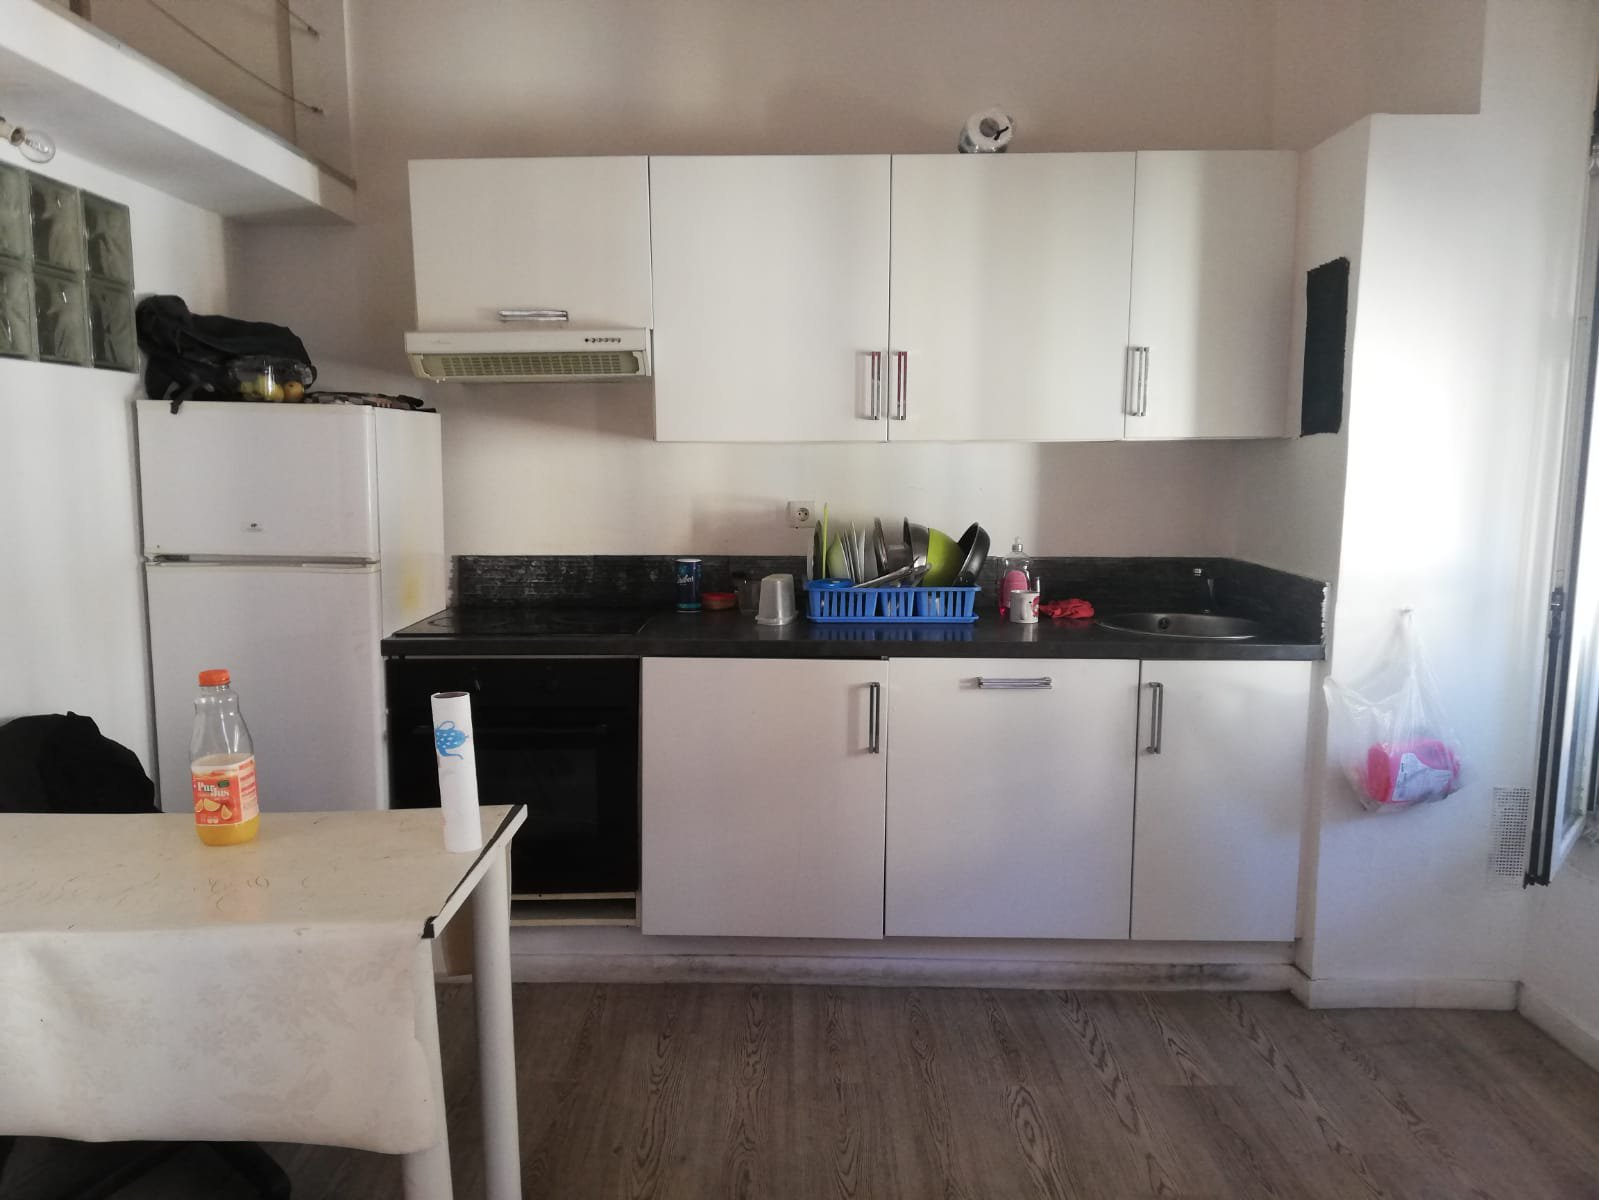 Beaumont, Lot de 2 appartements de 30m2 l'un, loué 1500€